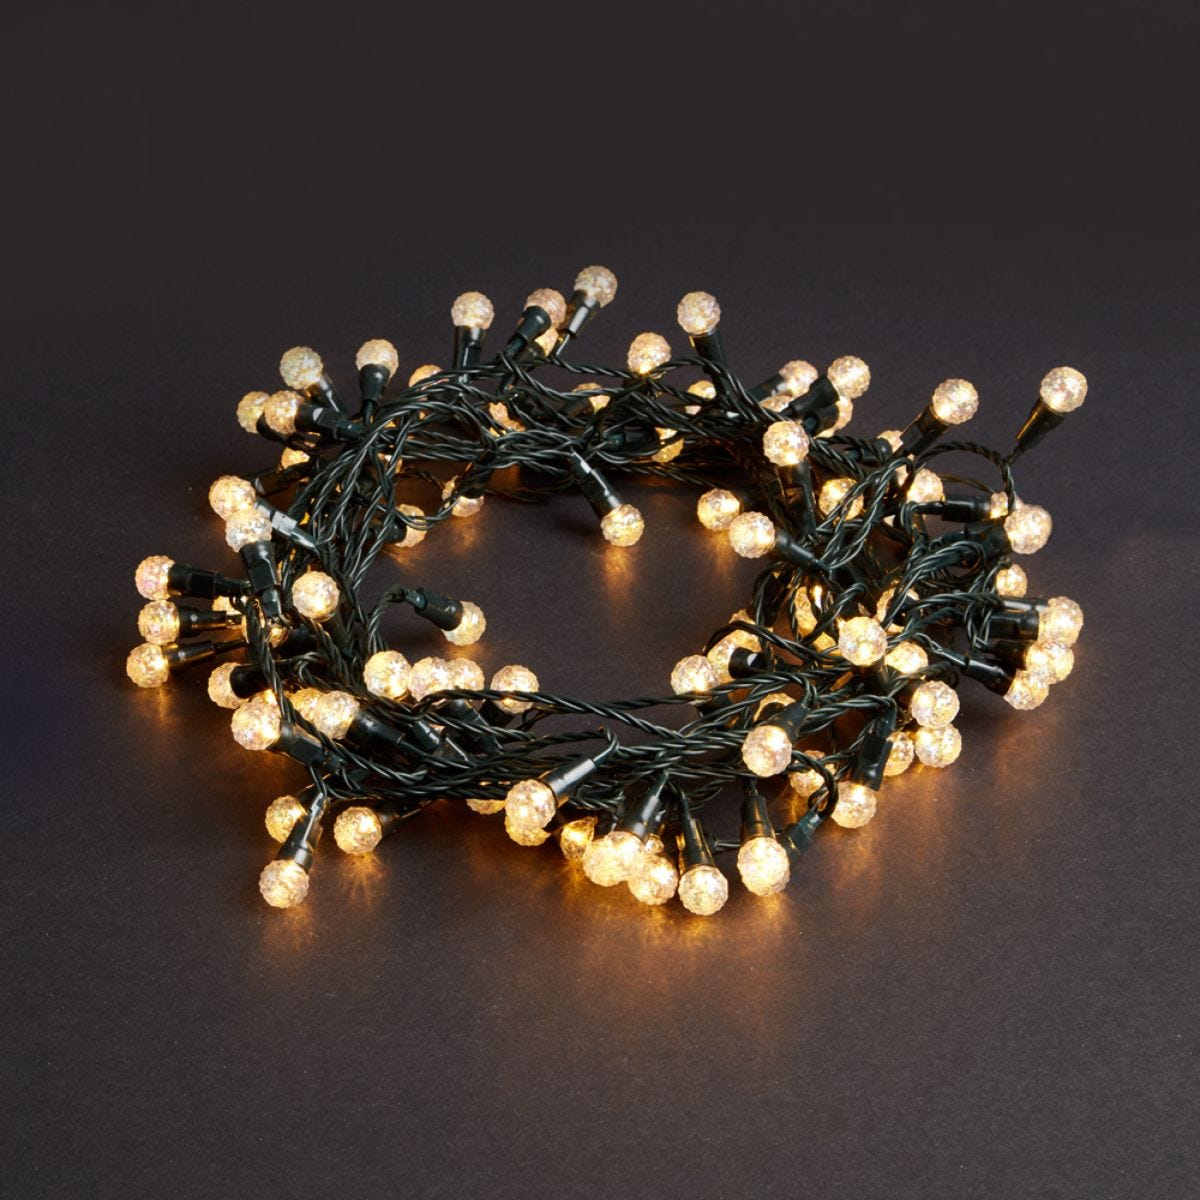 200 Low Voltage LED Crackle Berry Lights - Warm White